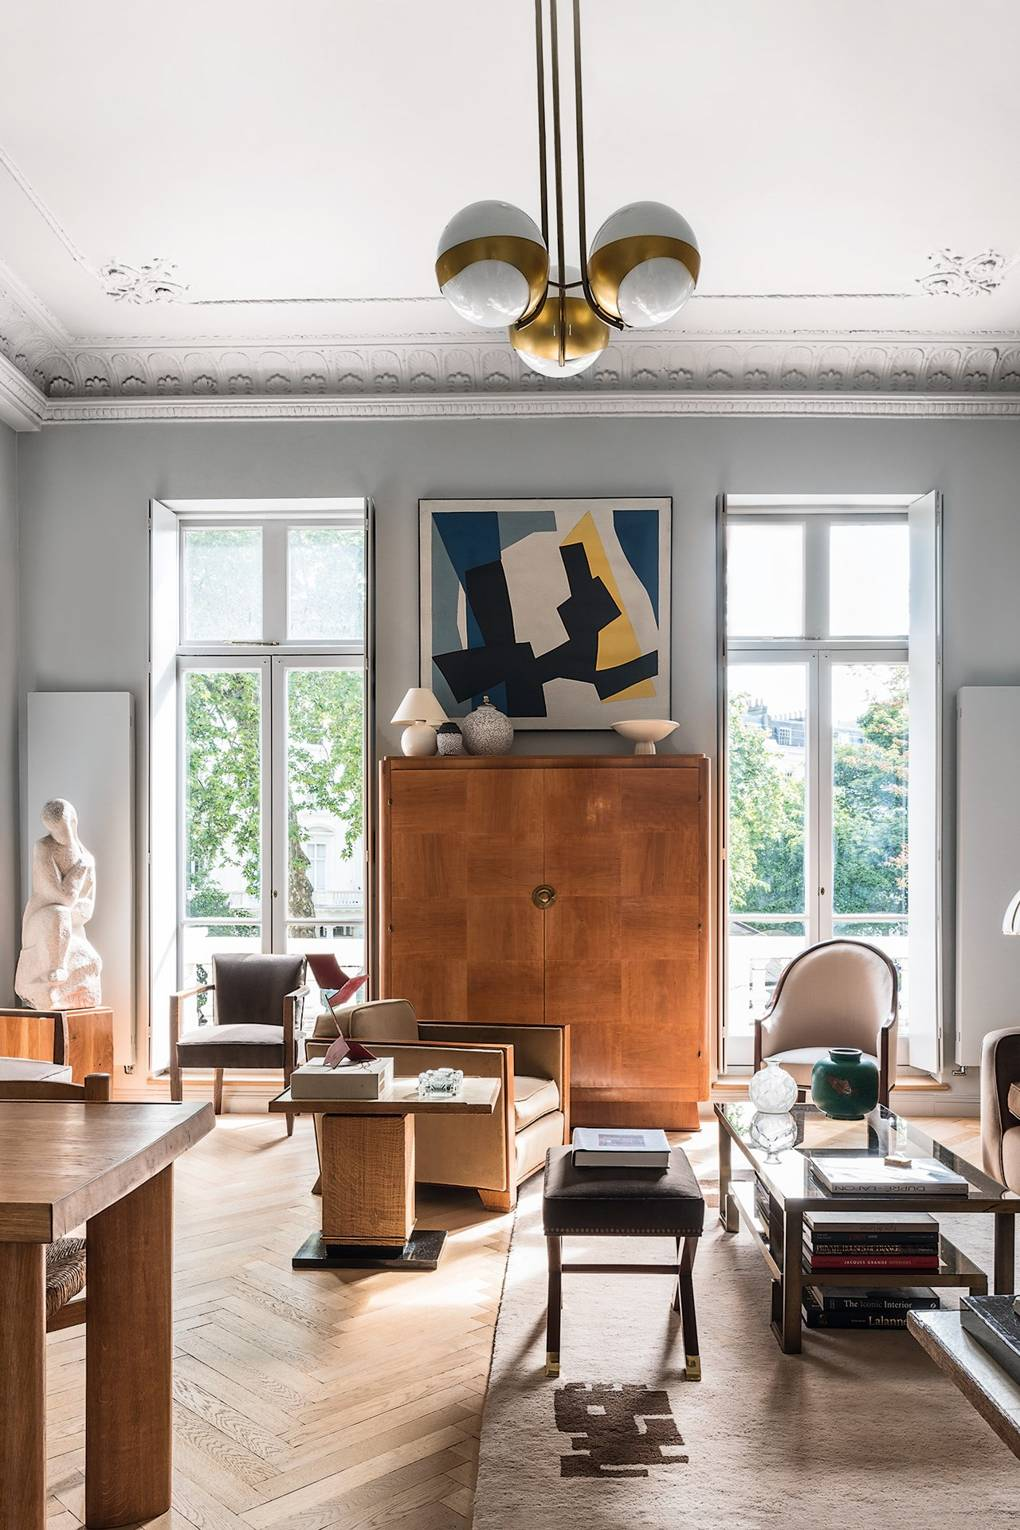 Living Room - French Art Deco Flat